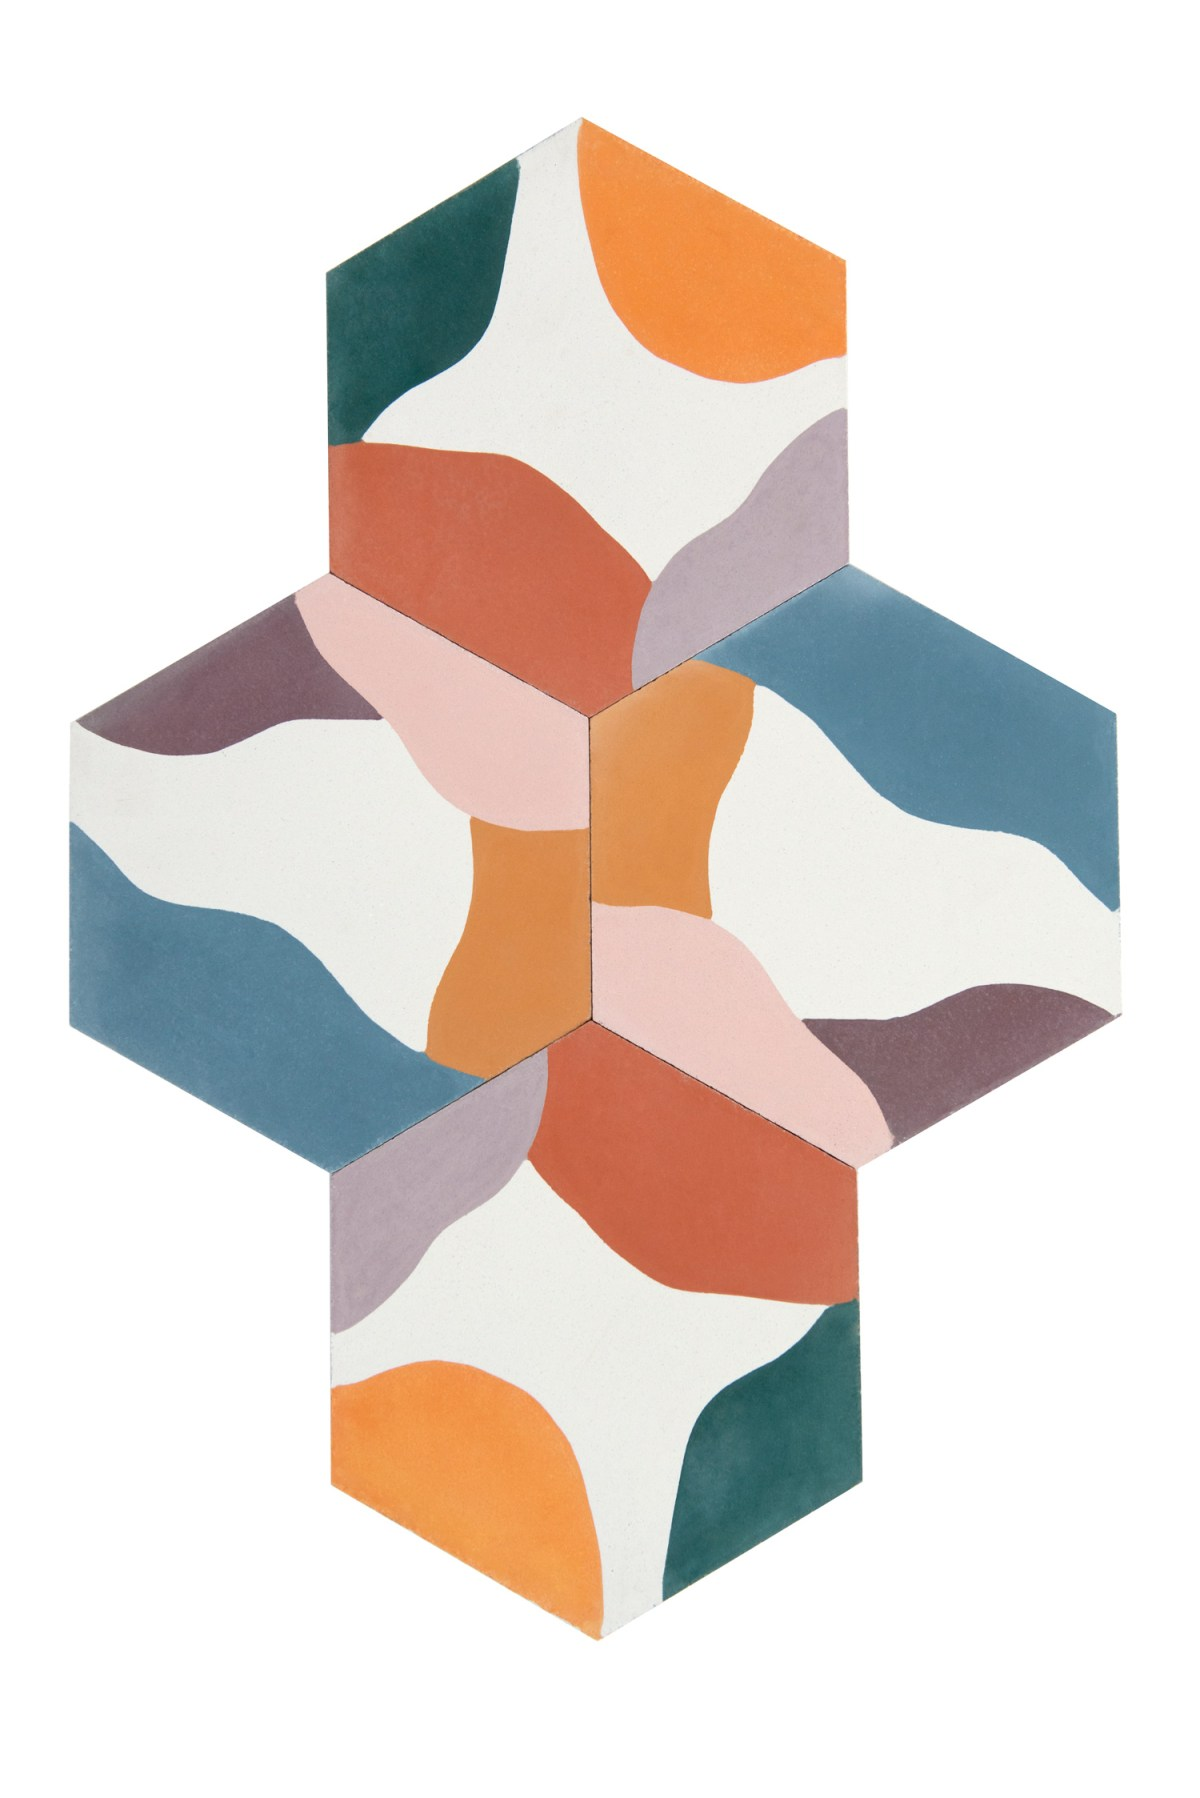 Fruit-Salad-Tiles-by-Juju-Papers-Yellowtrace-07